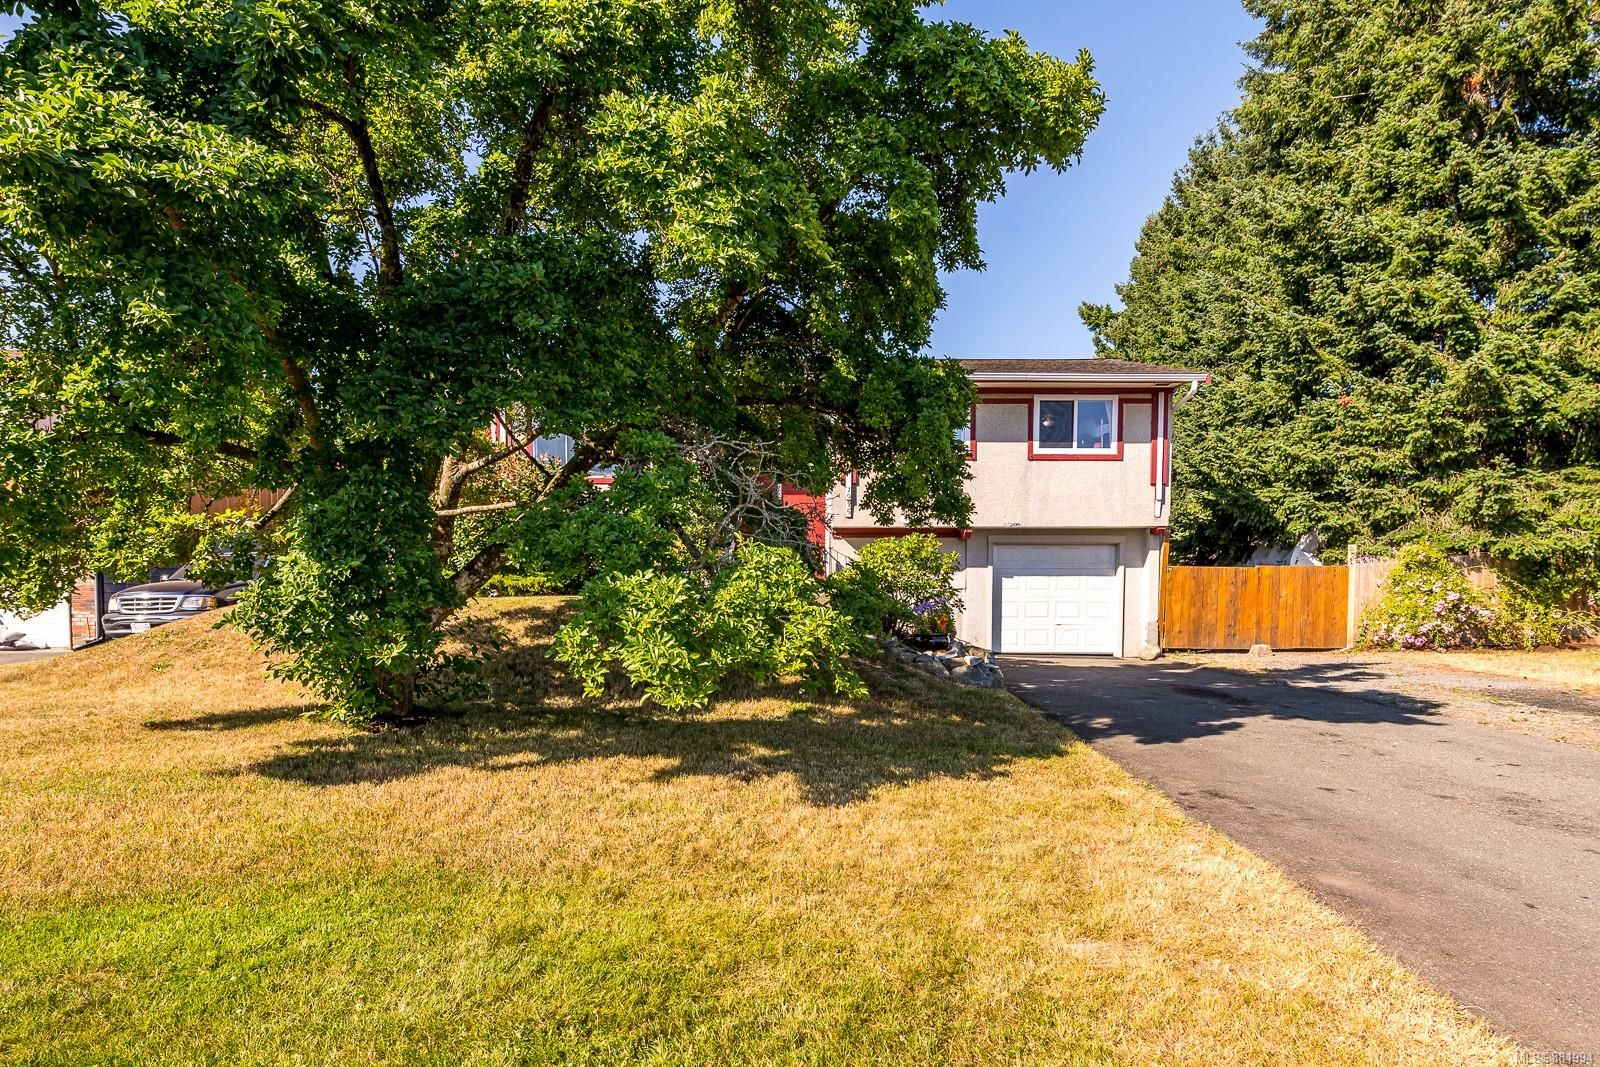 Photo 21: Photos: 1935 Fitzgerald Ave in : CV Courtenay City House for sale (Comox Valley)  : MLS®# 881994